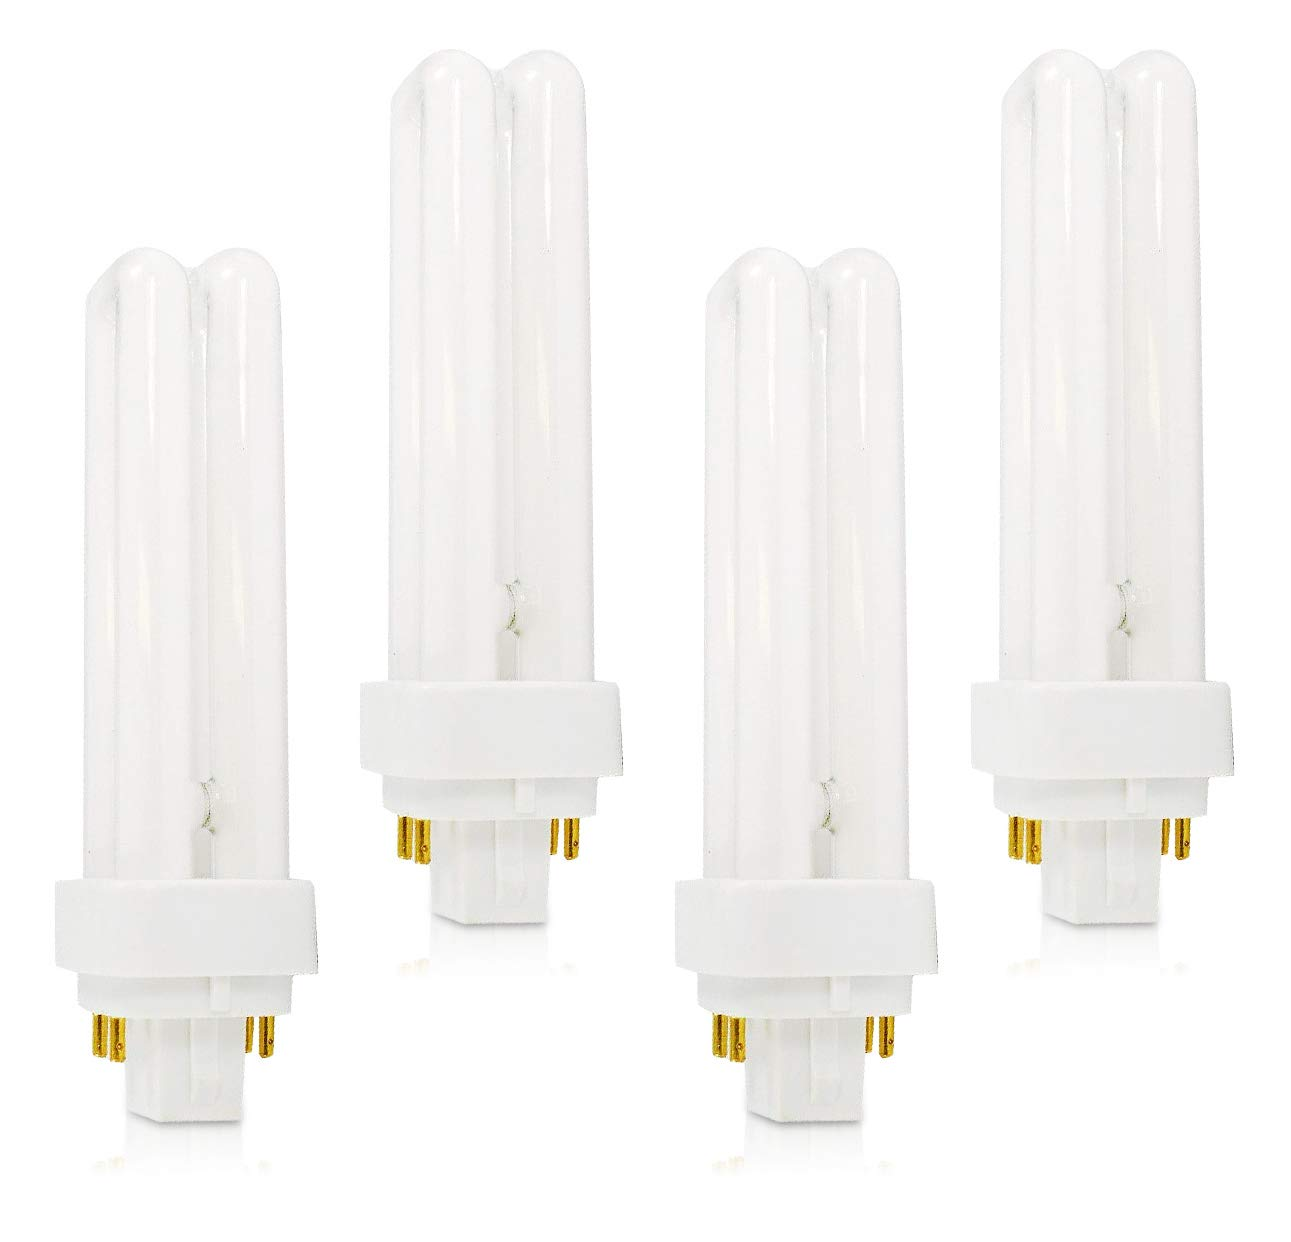 (4 Pack) PLC-13W 841, 4 Pin G24q-1, 13 Watt Double Tube, Compact Fluorescent Light Bulb, Replaces Philips 38328-1 PL-C 13W/841/4P/ALTO, Sylvania 20667 and GE 97597 - F13DBX/841/ECO4P by Circle